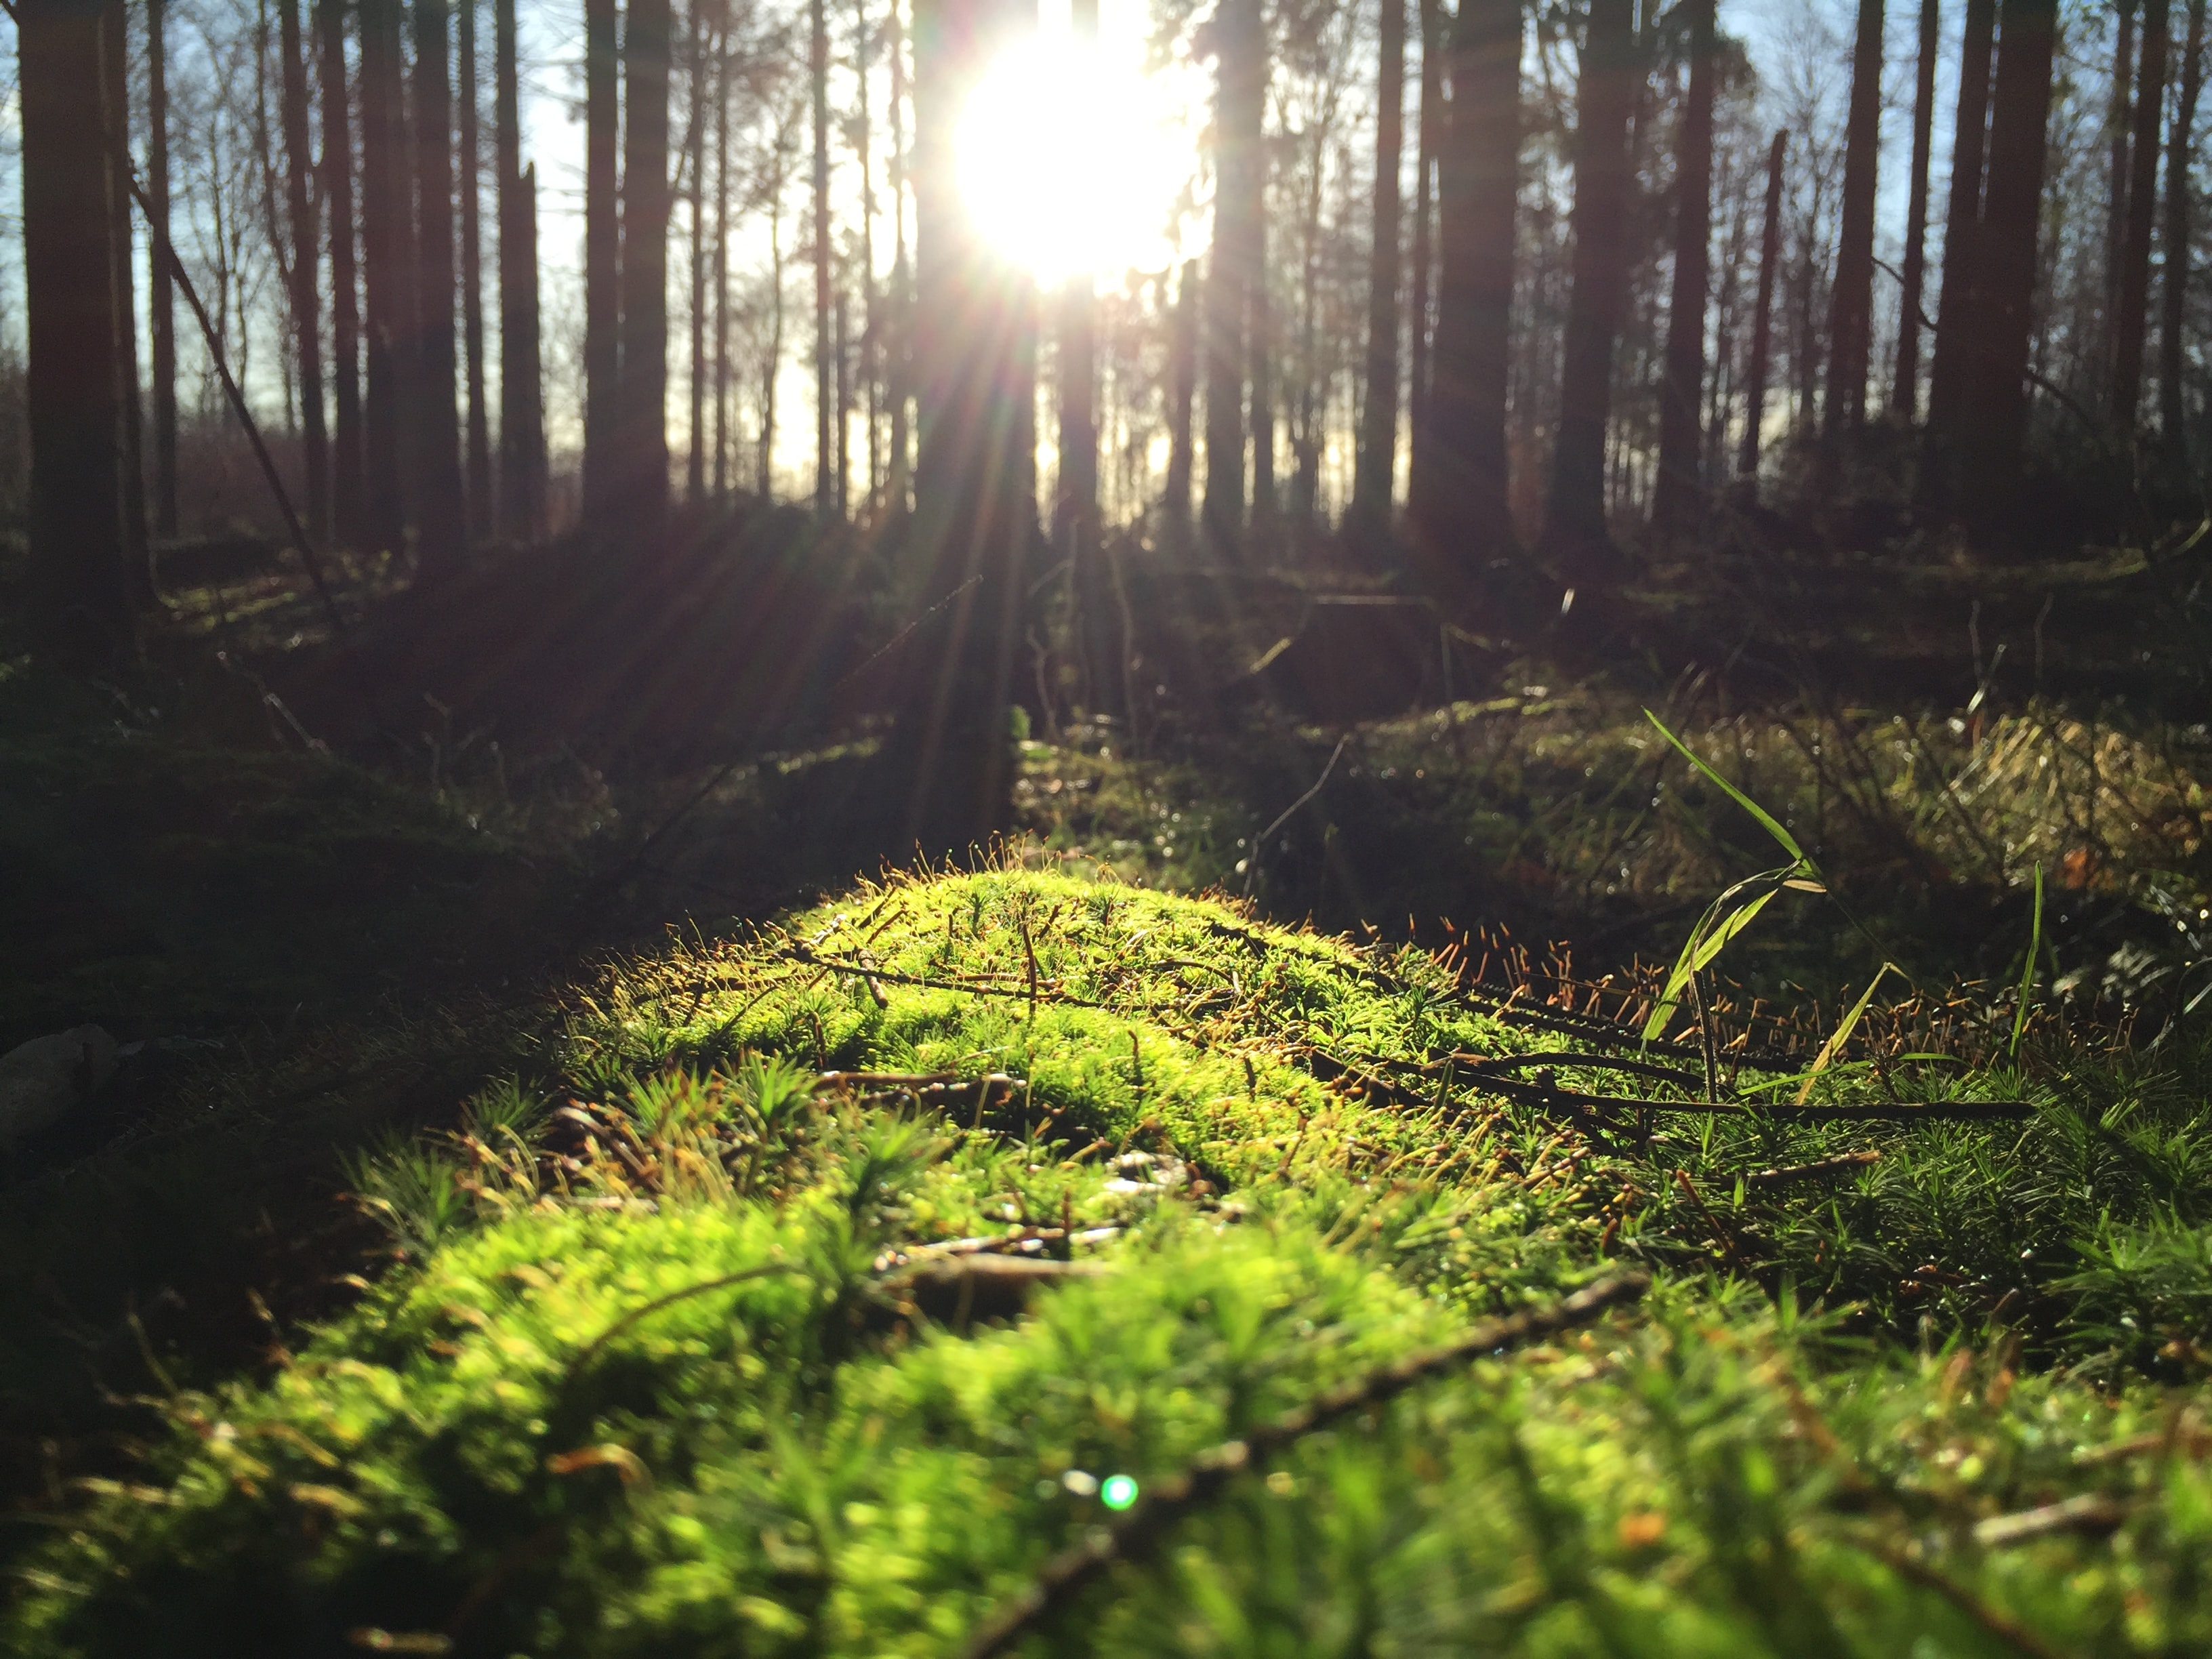 A low shot of green underbrush in a forest under a bright sun